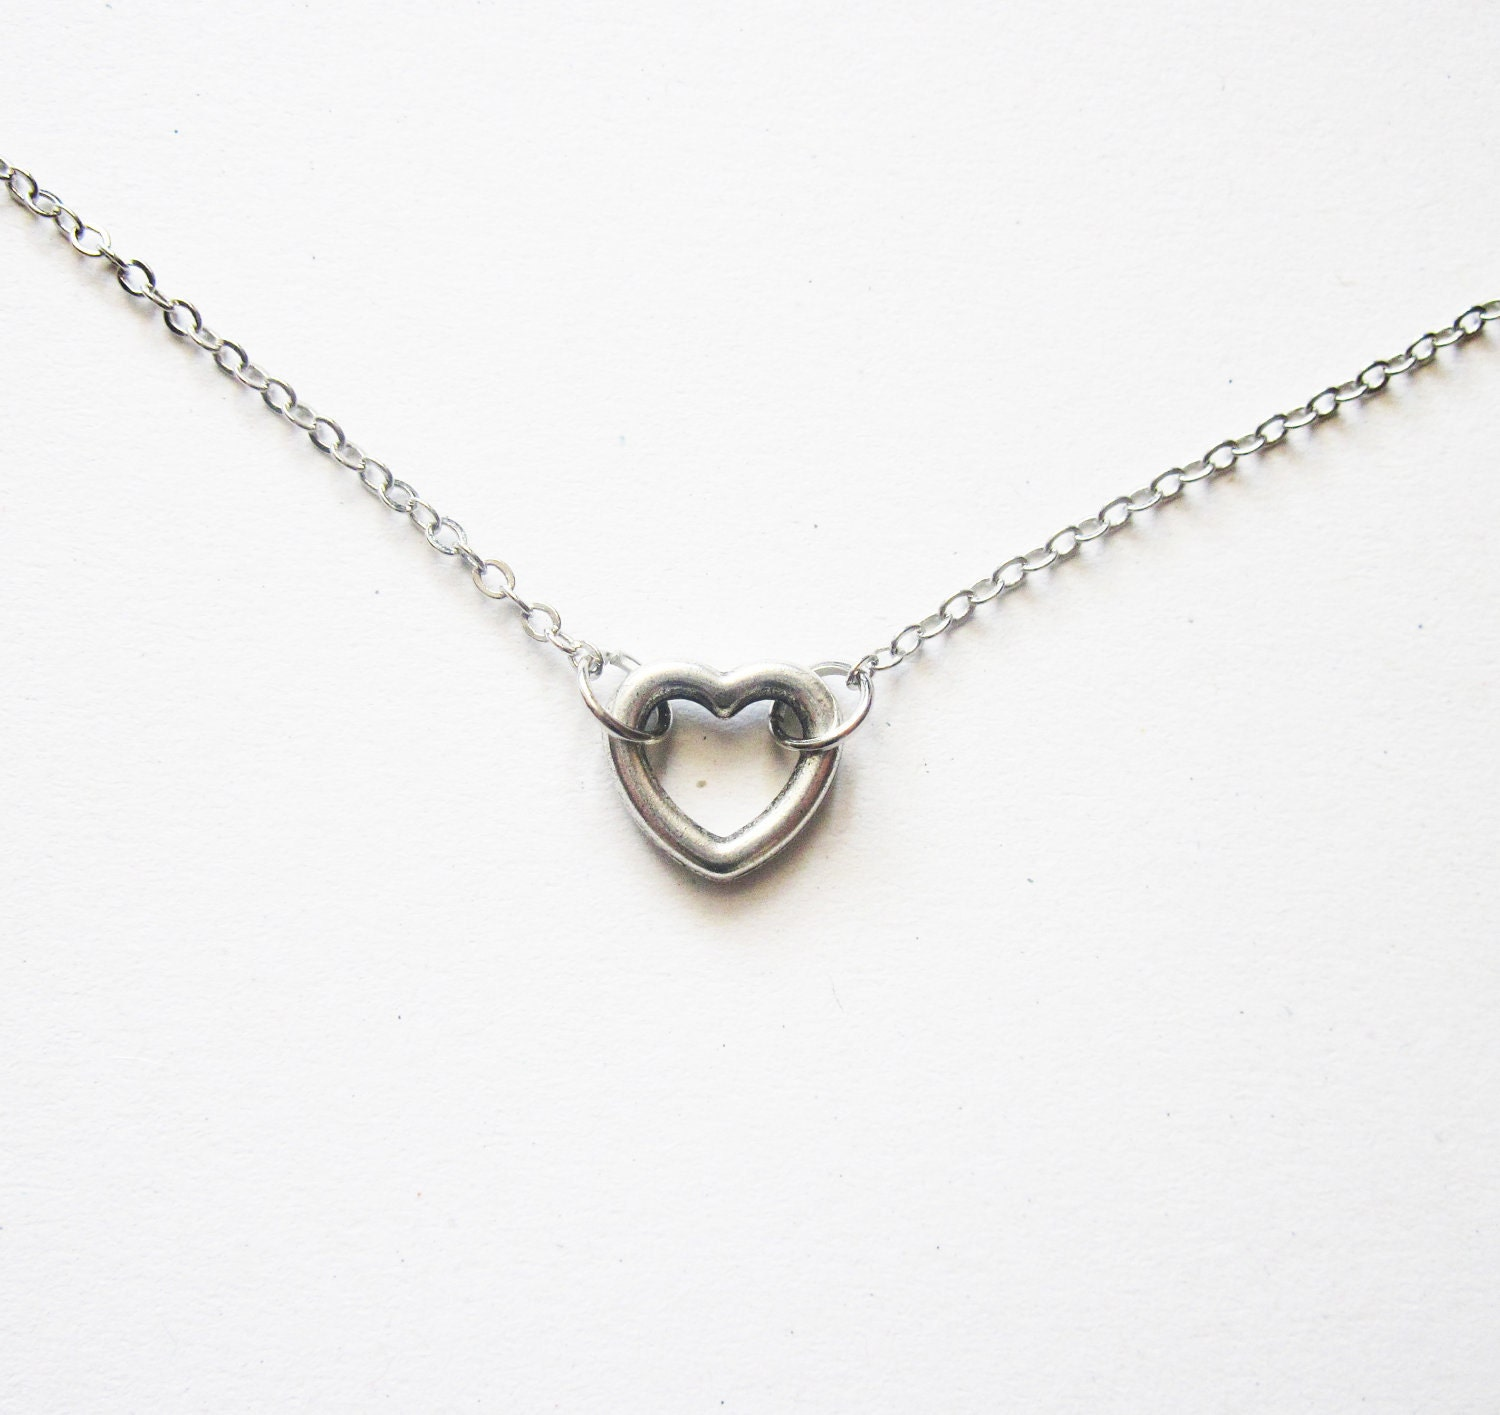 small necklace simple silver necklace everyday jewelry